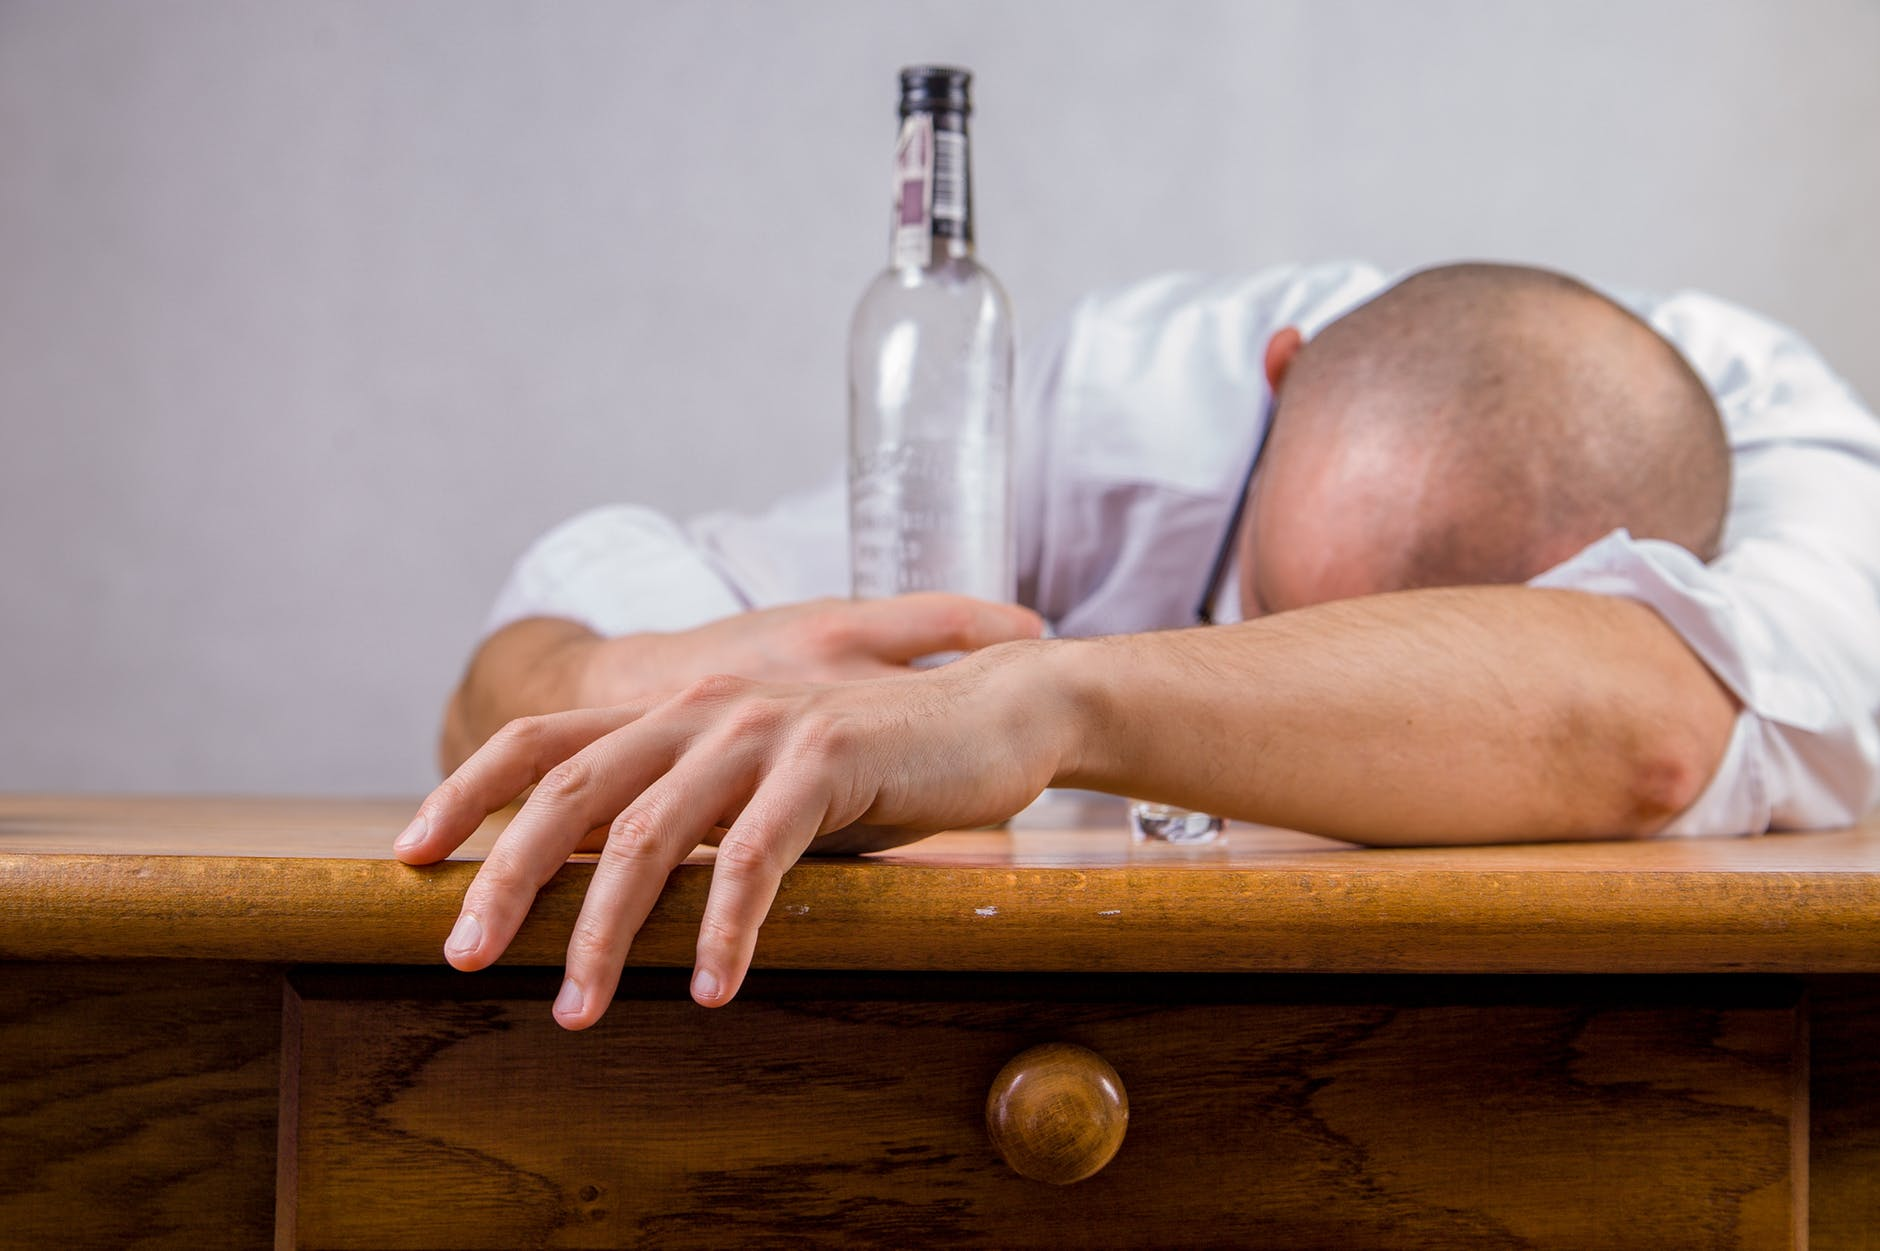 5 Natural Ways To Cure A Hangover